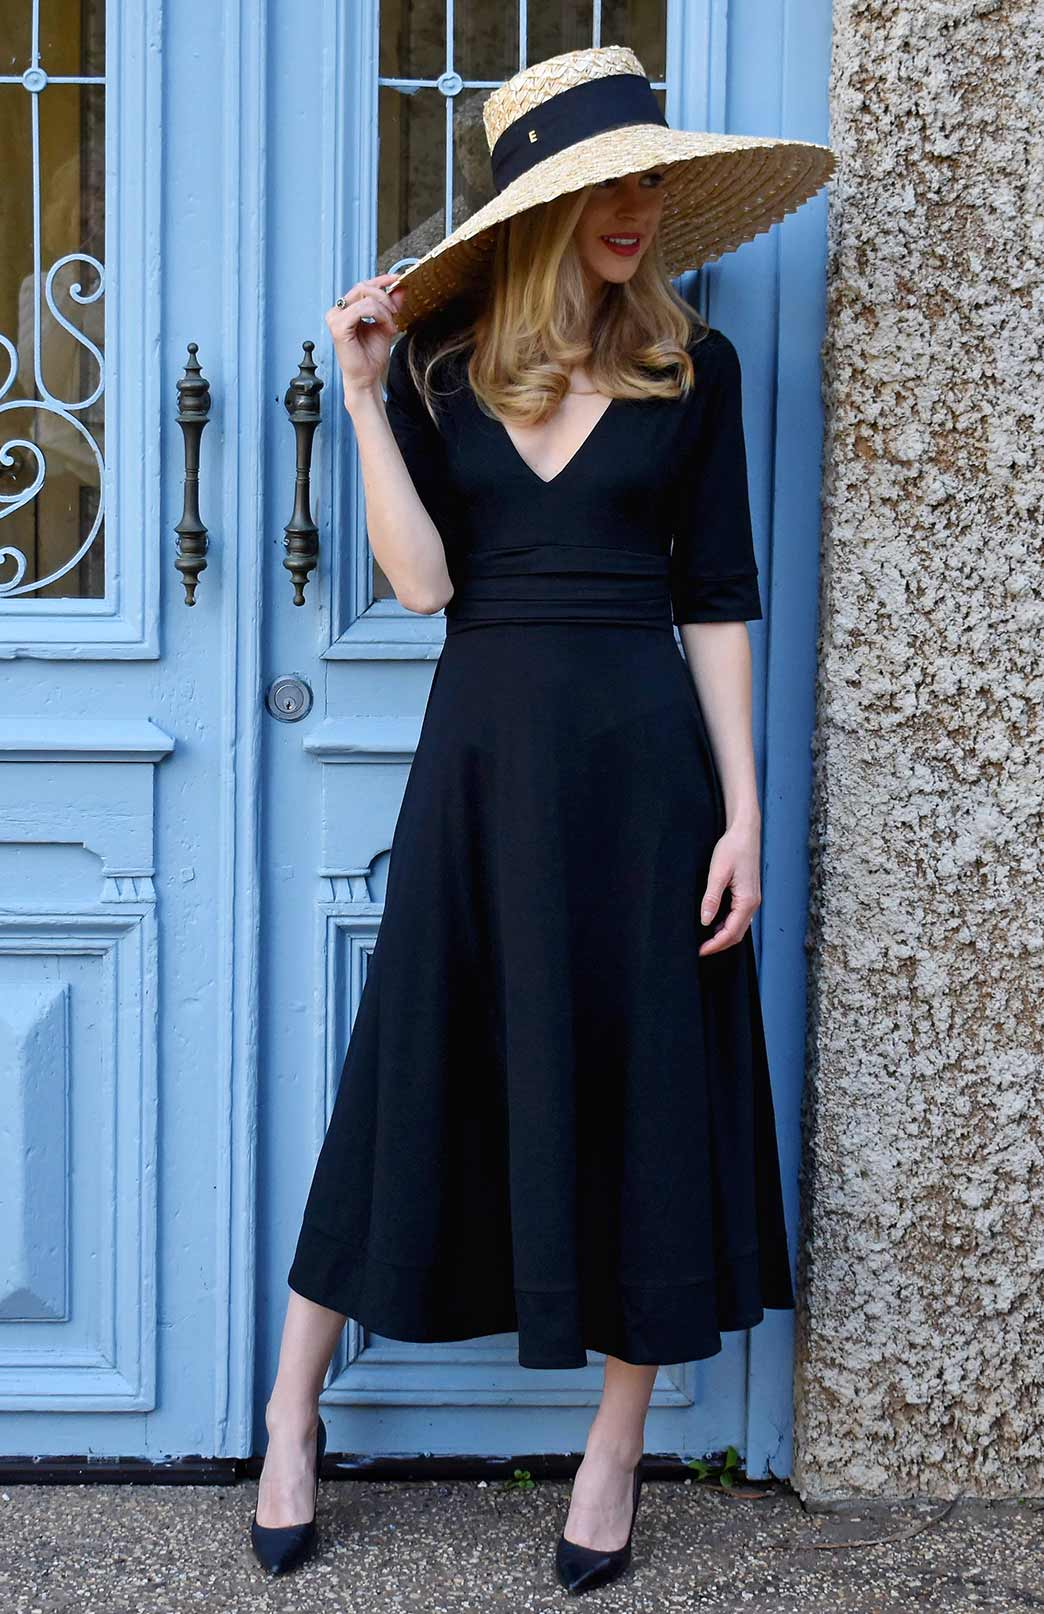 Ava Dress - Women's Midnight Black Wool Party Dress with Elbow Length Sleeves, Deep V-Neckline, Pleated Waistband and Flowing Long Line Skirt - Smitten Merino Tasmania Australia